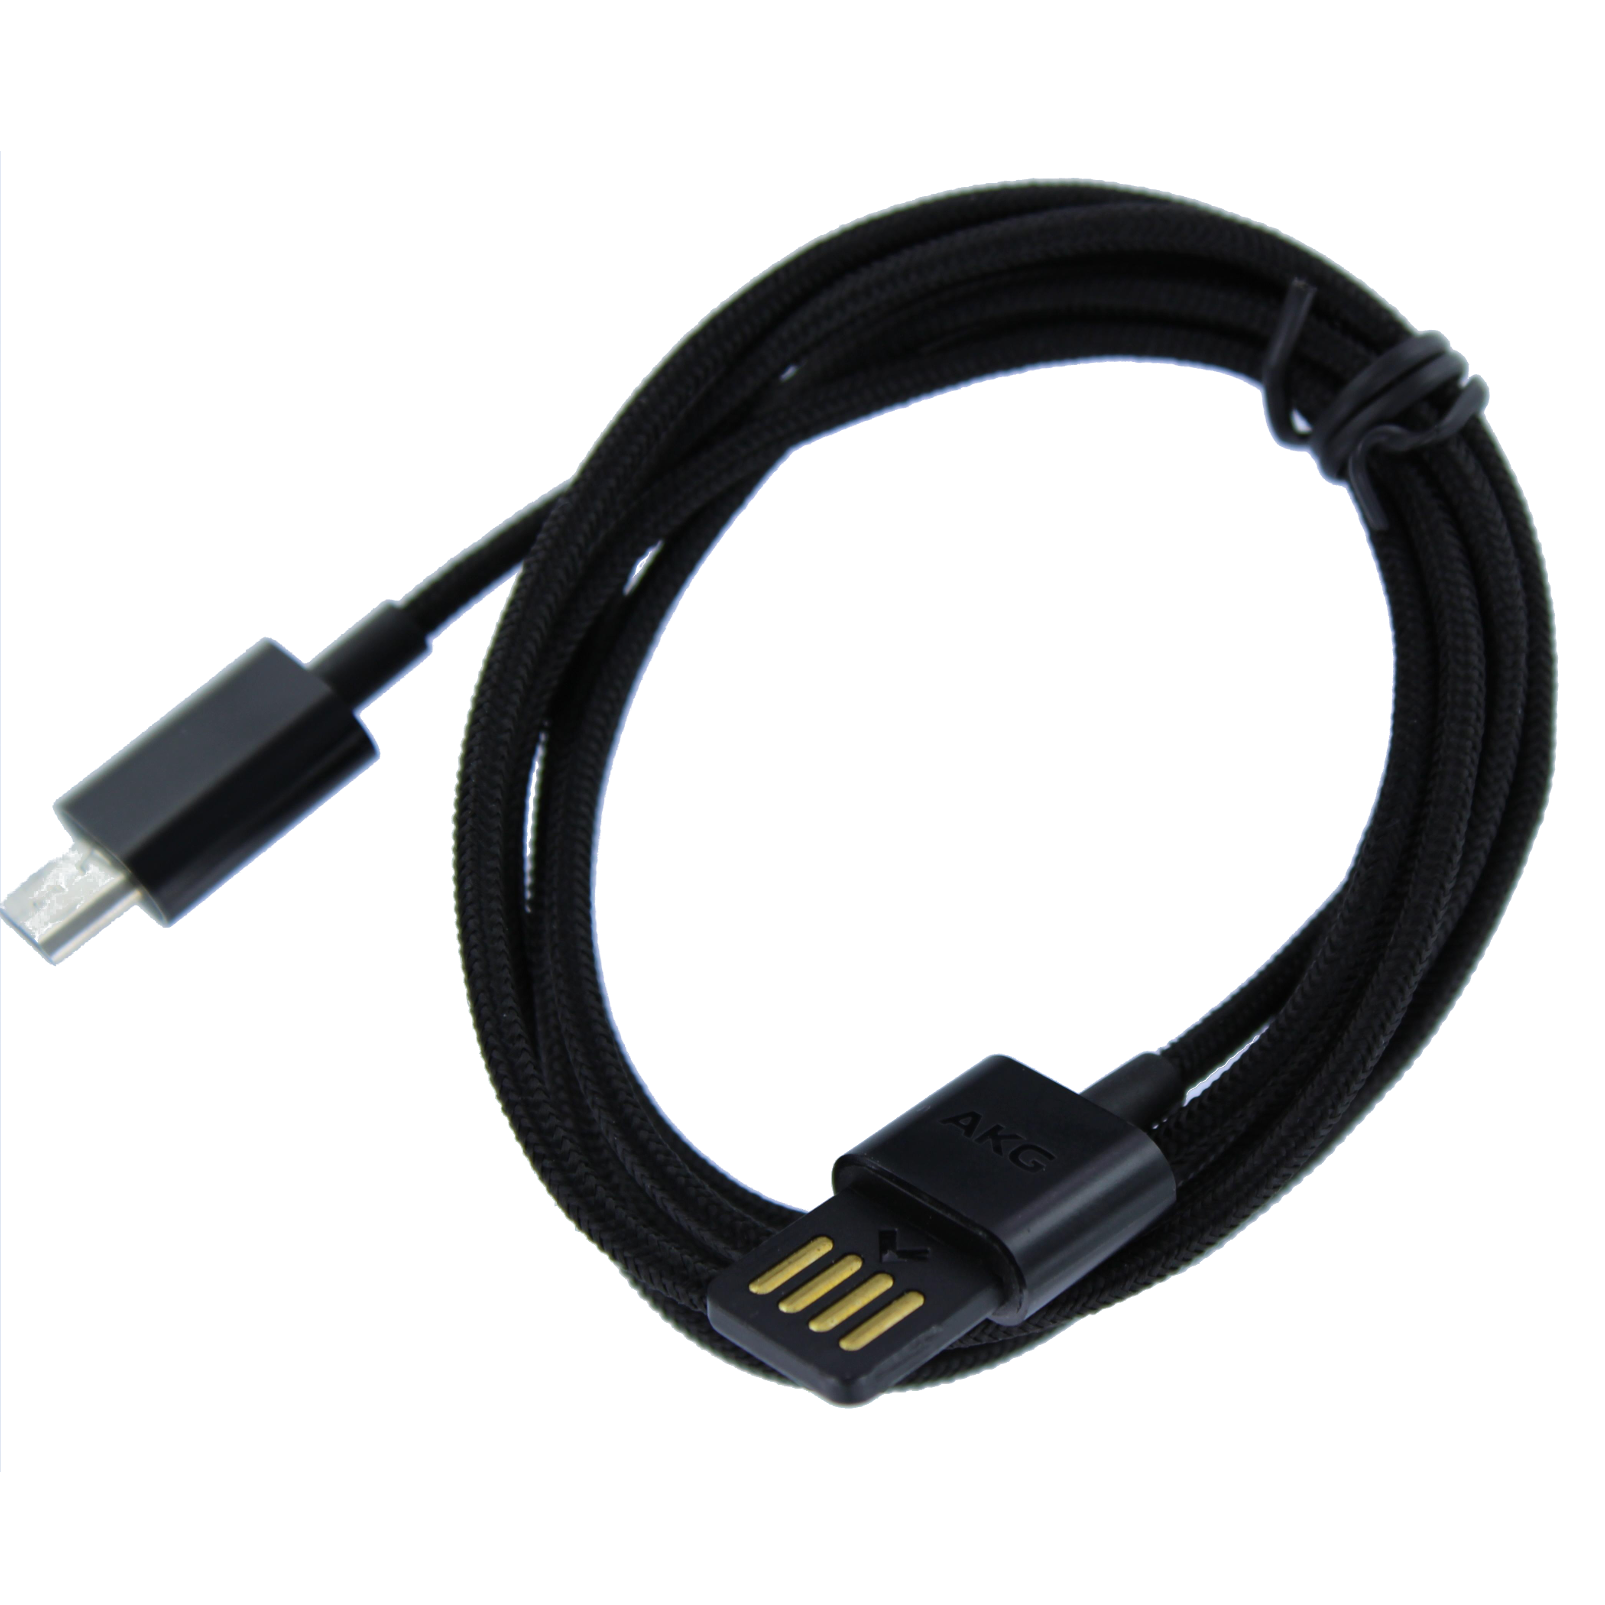 USB Charging cable, 120cm, AKG N90